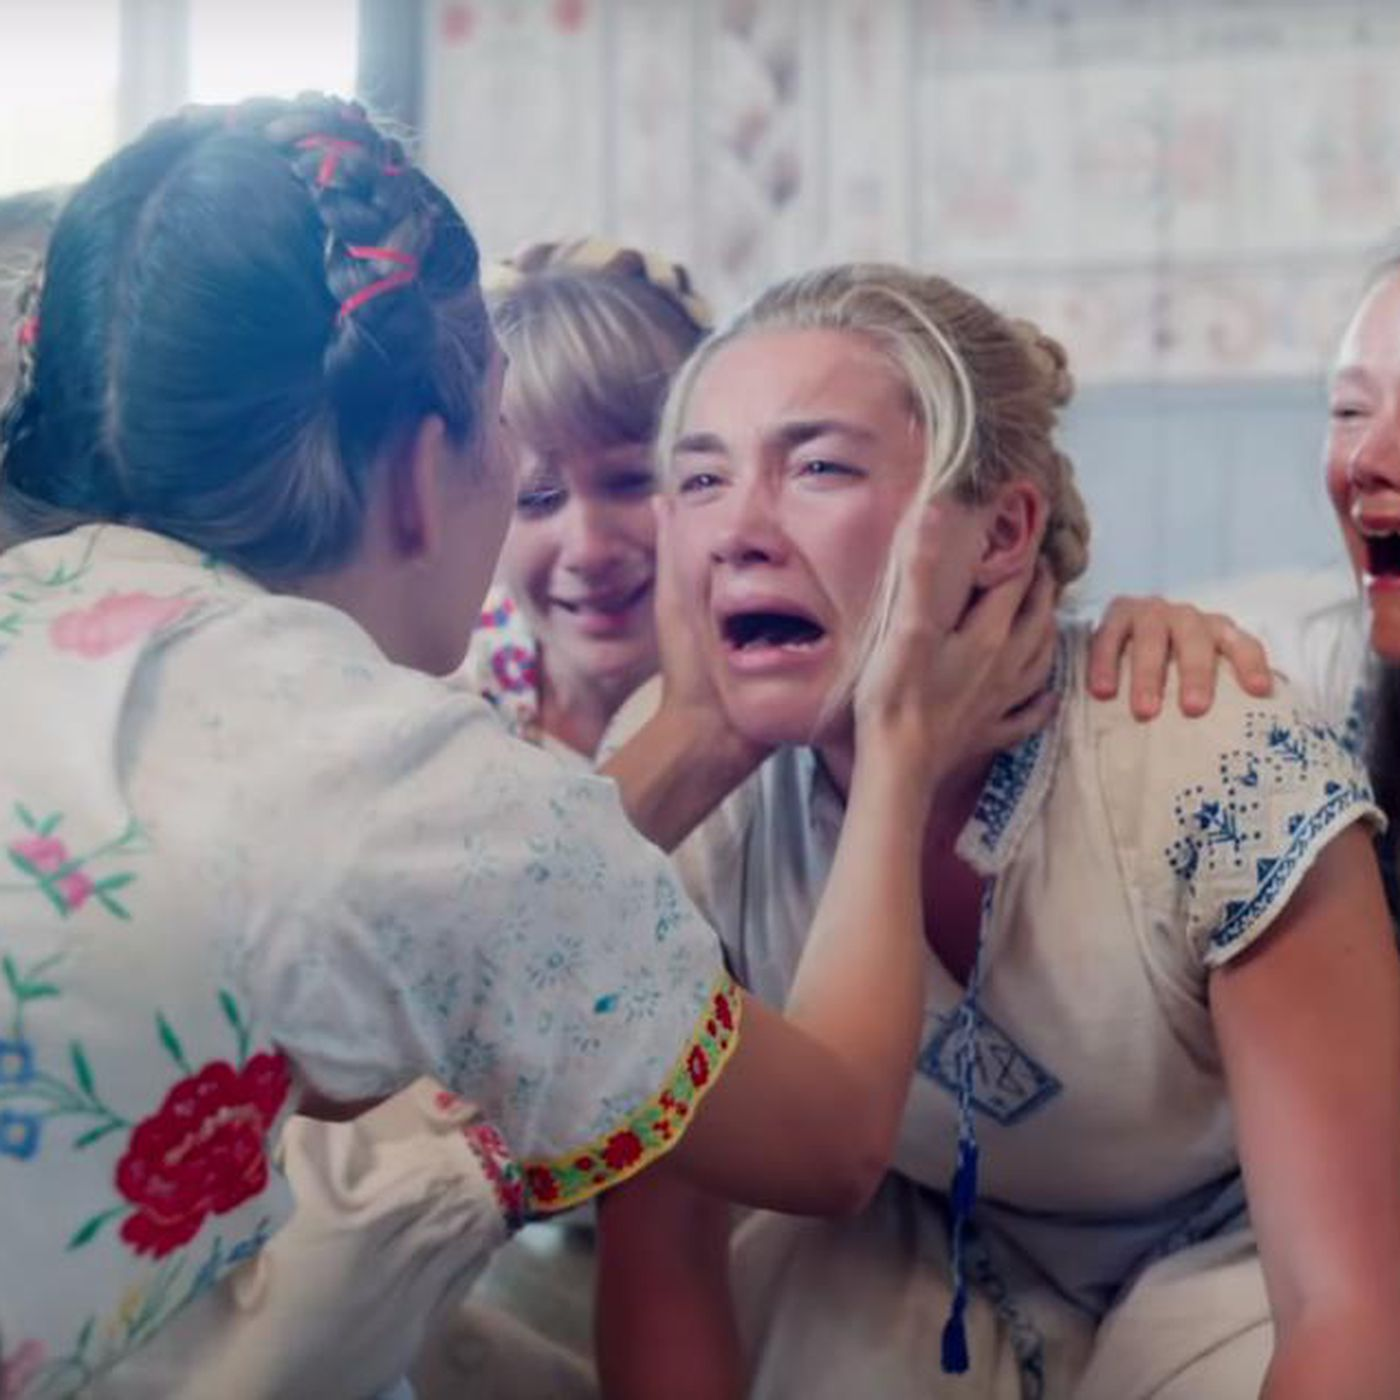 Midsommar review: a nasty daylit nightmare from the director